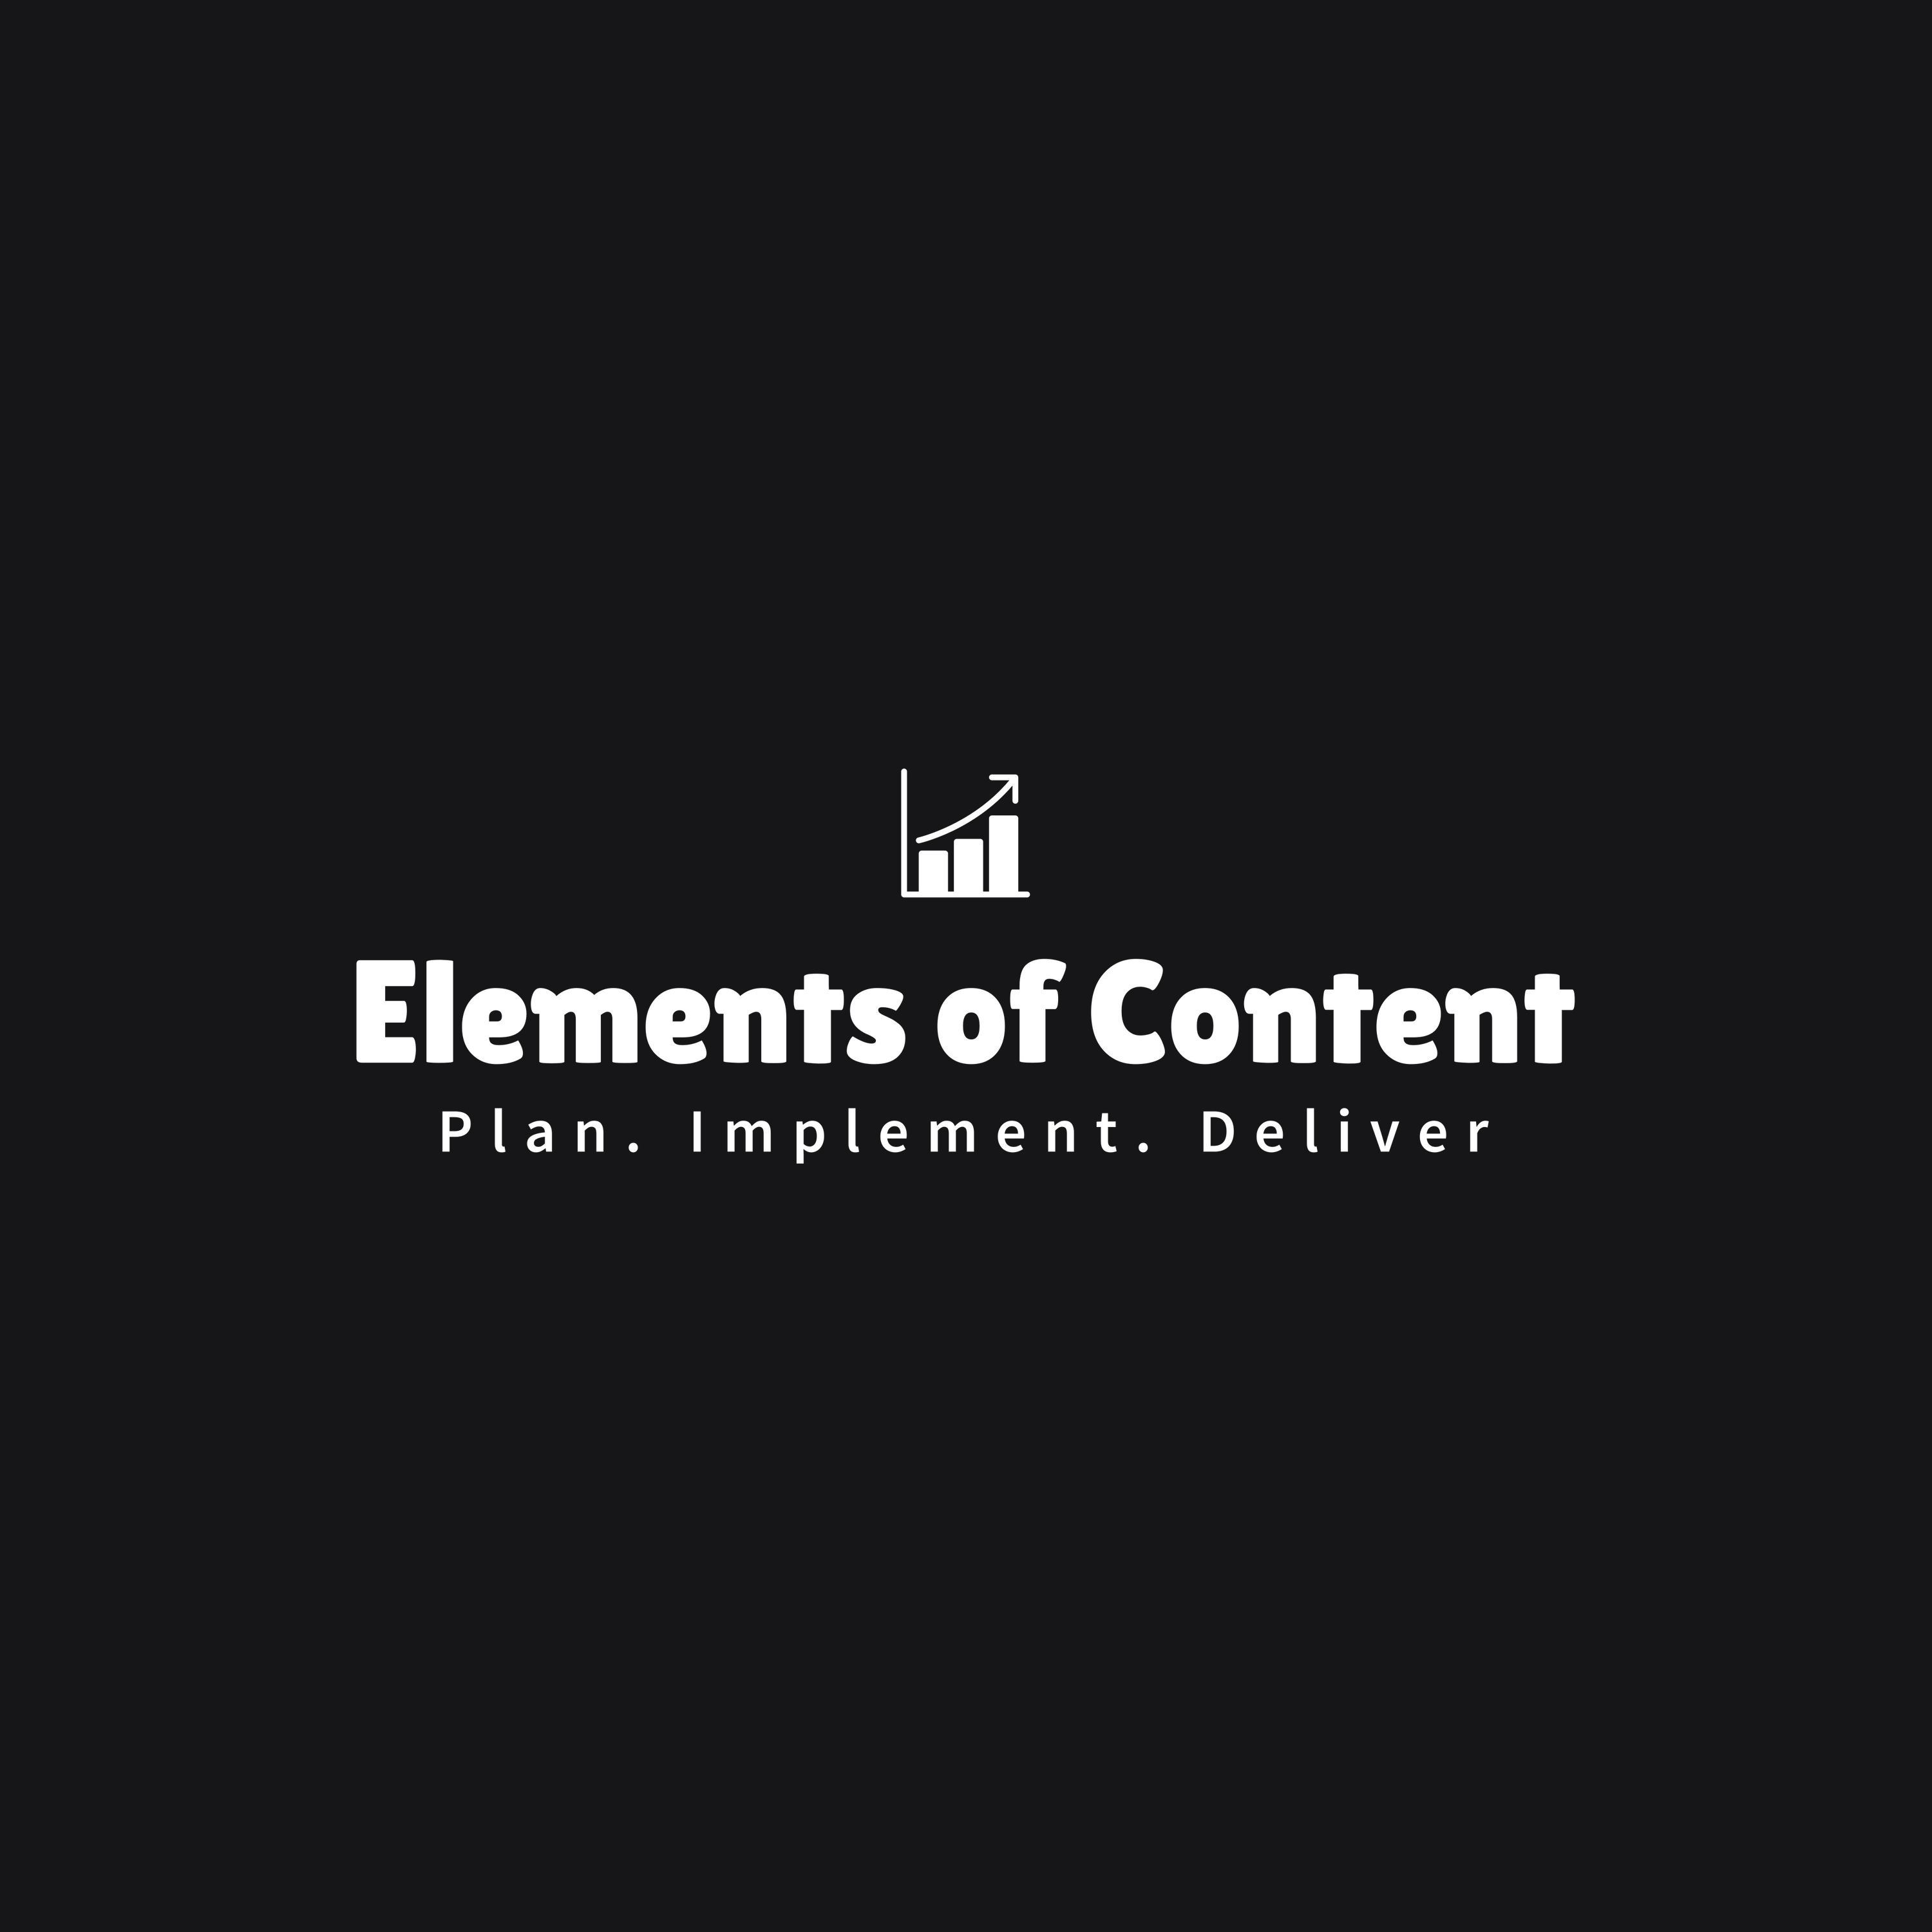 Elements of Content